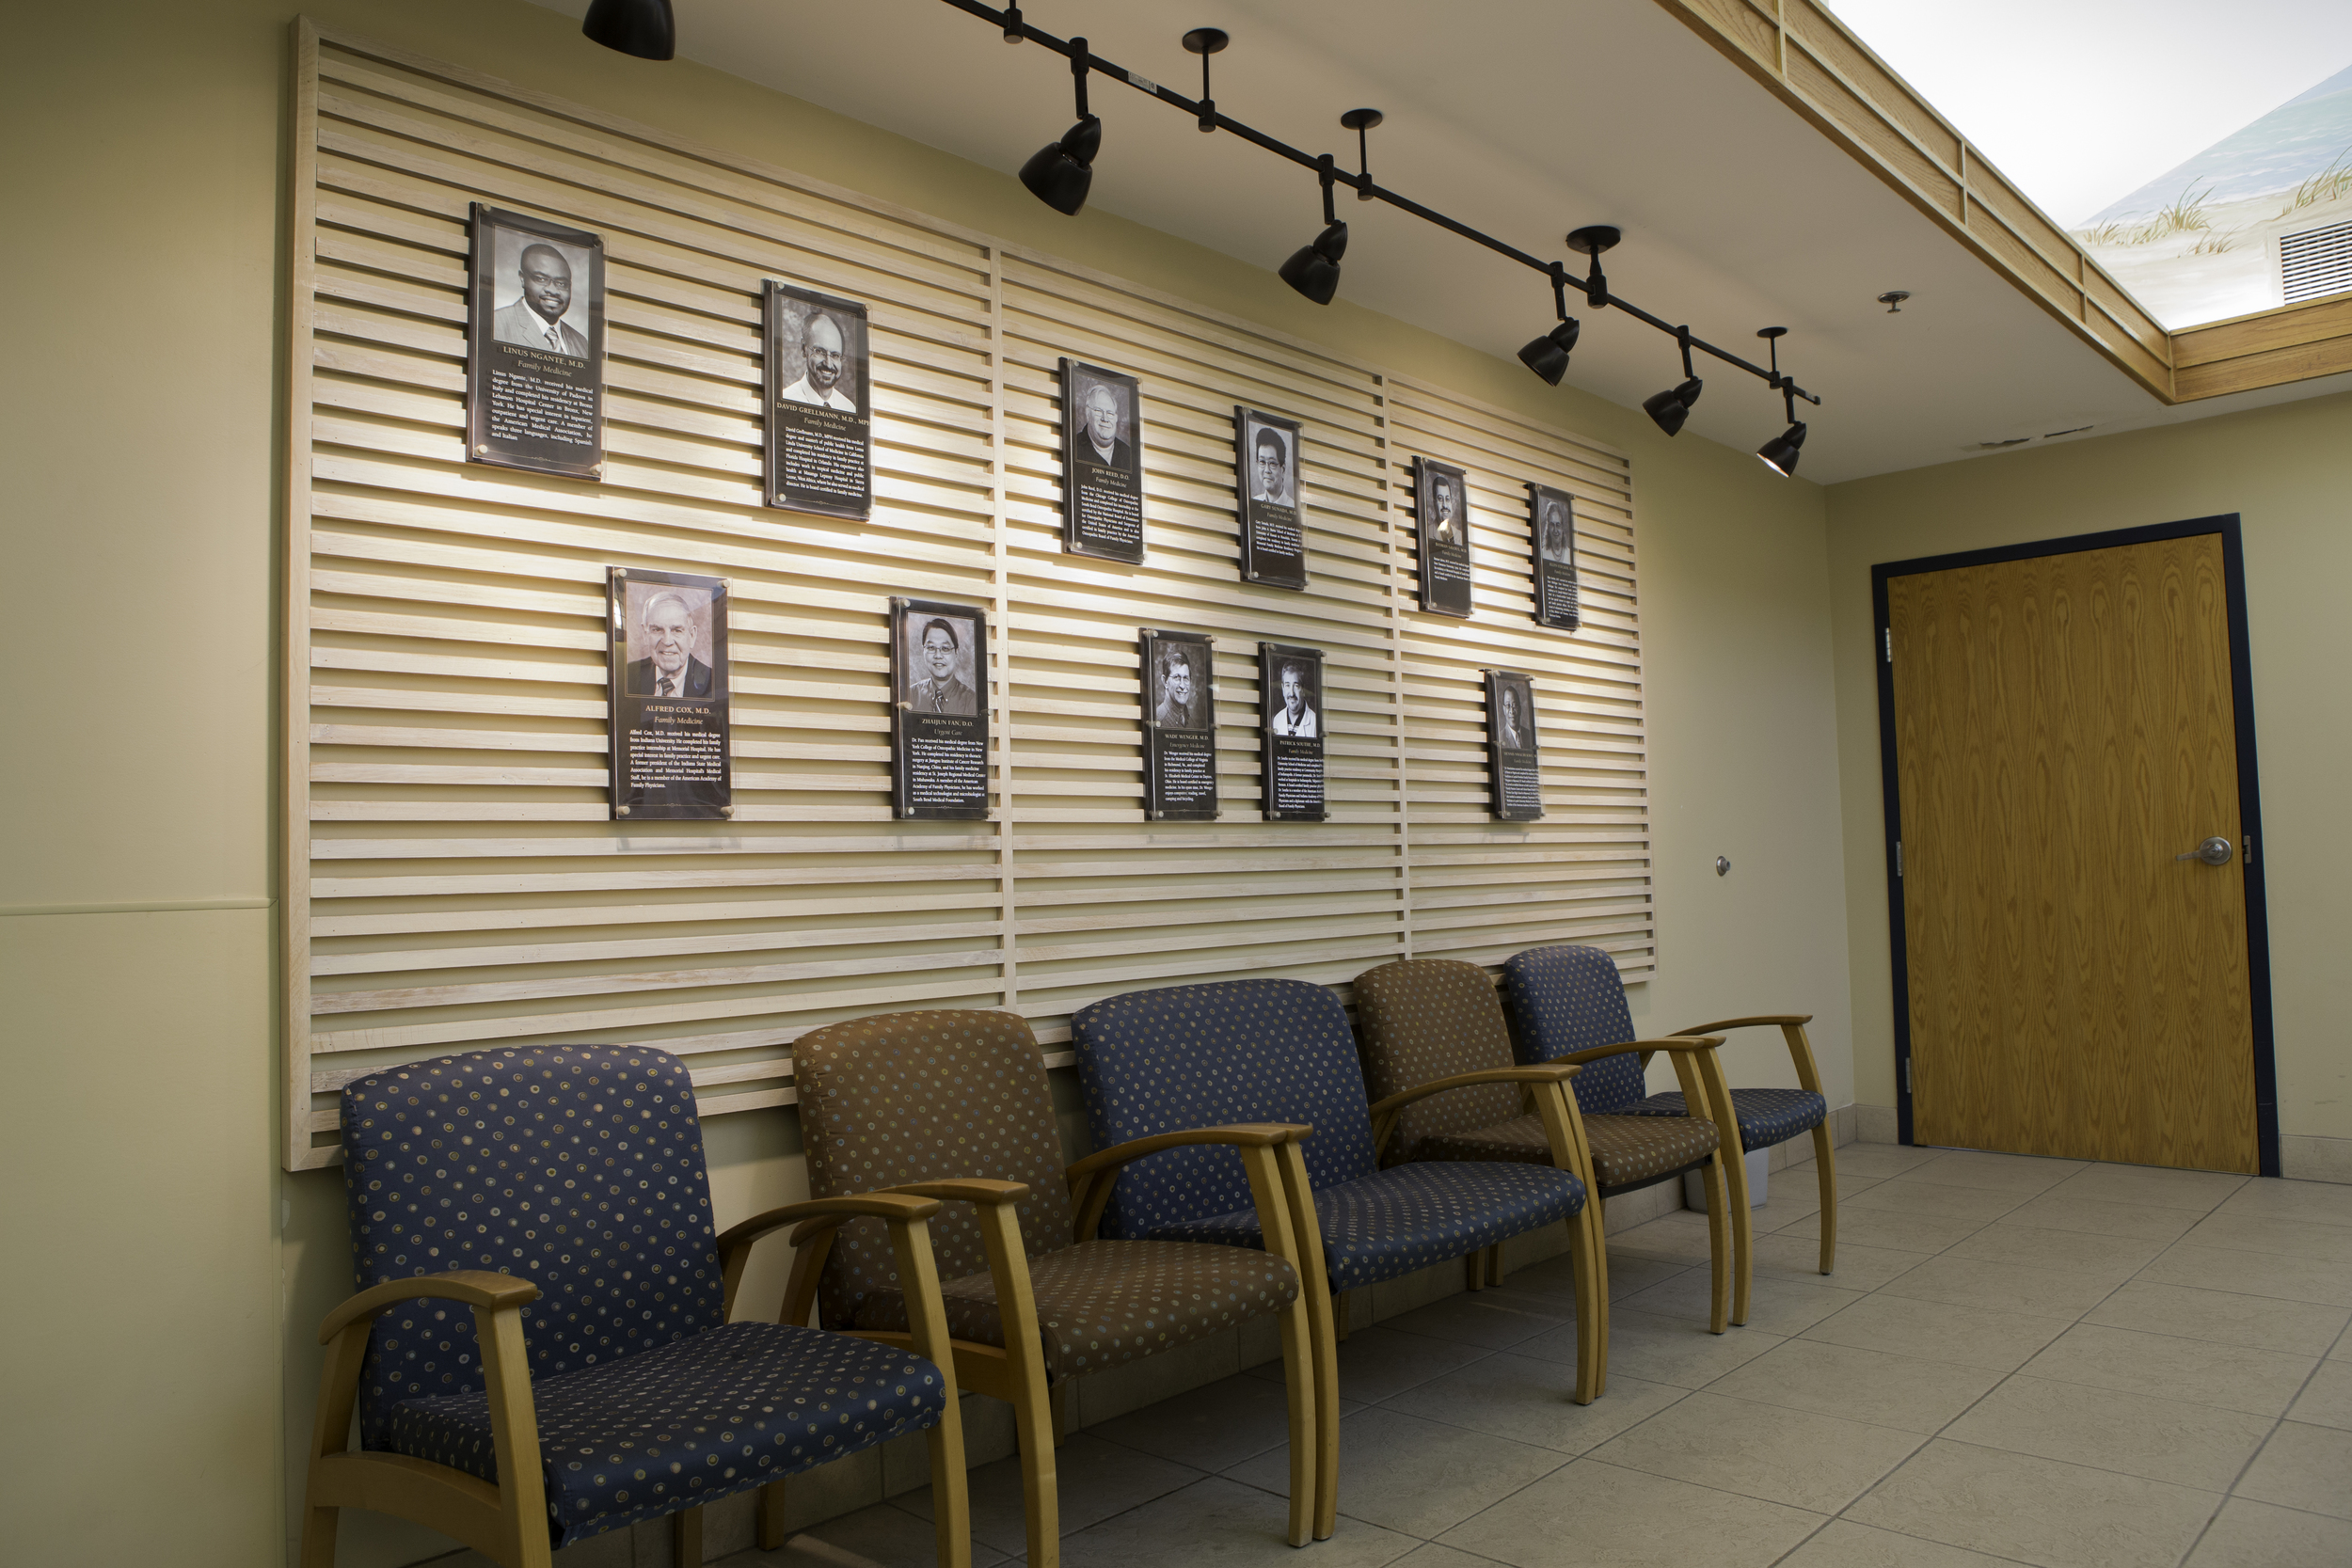 Urgent Care Waiting Area